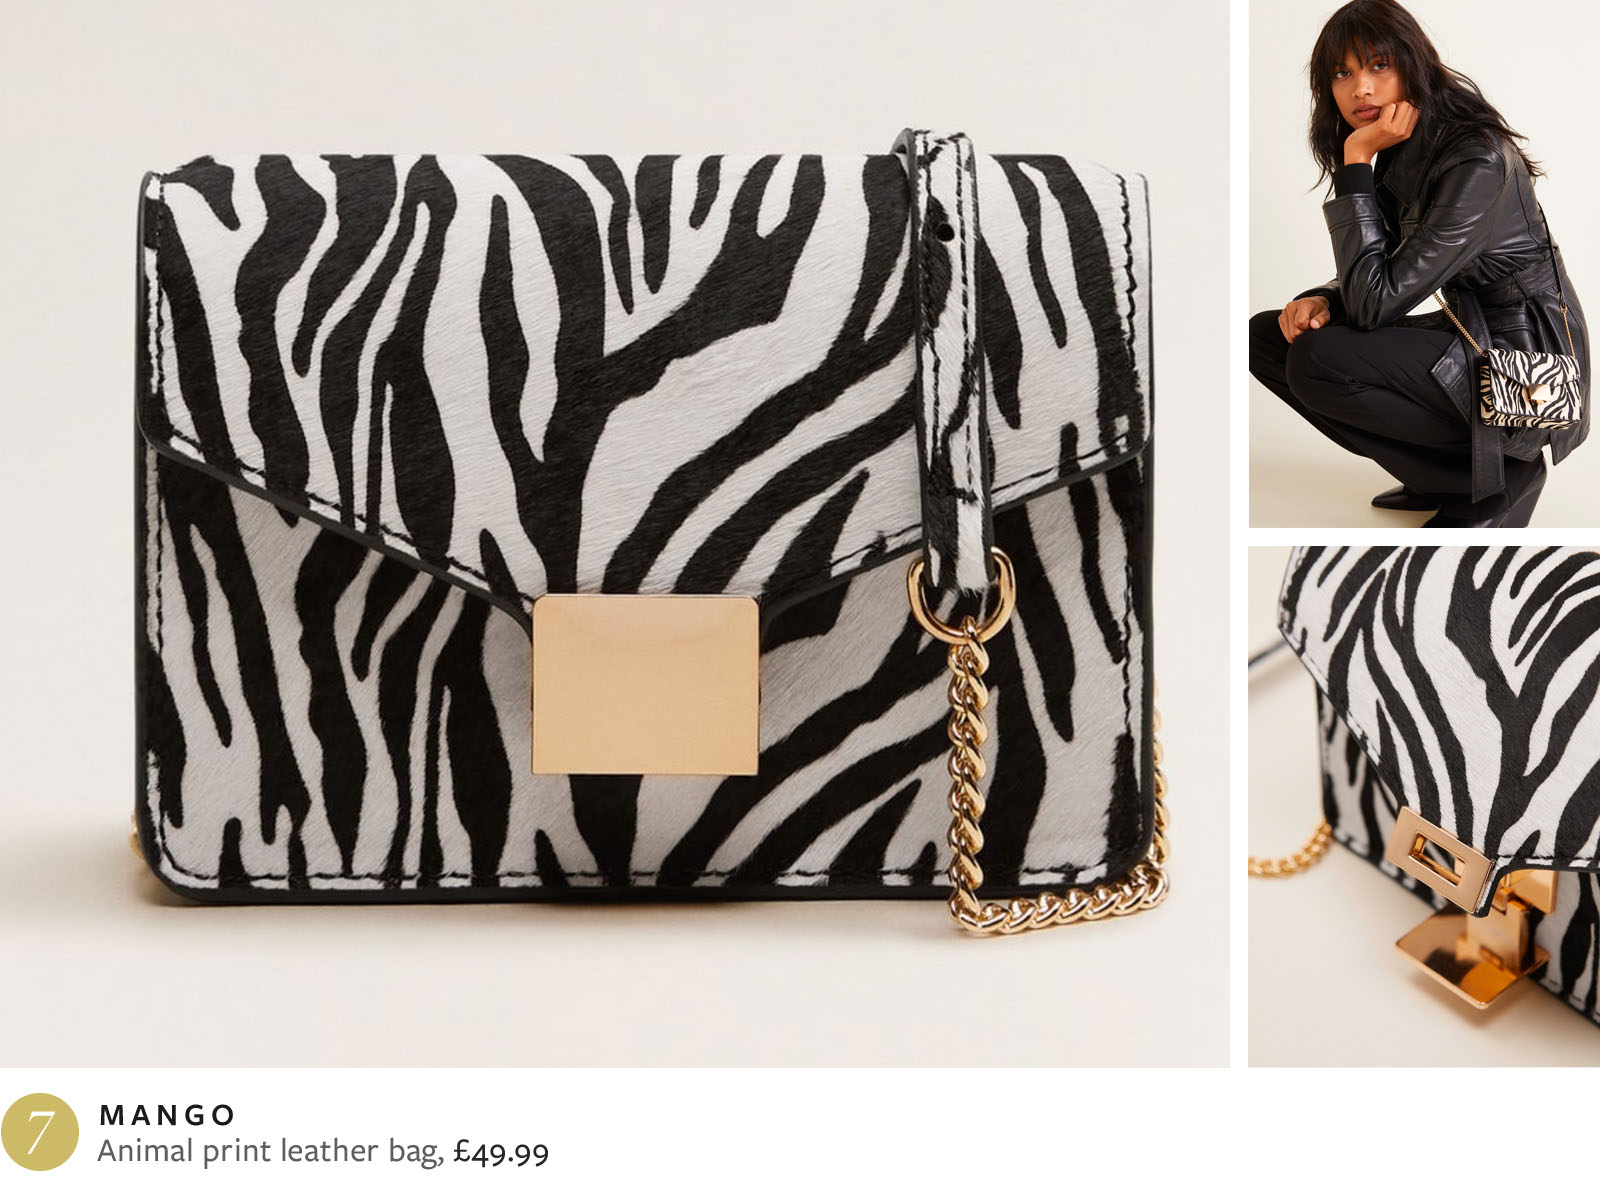 Mango animal print leather bag